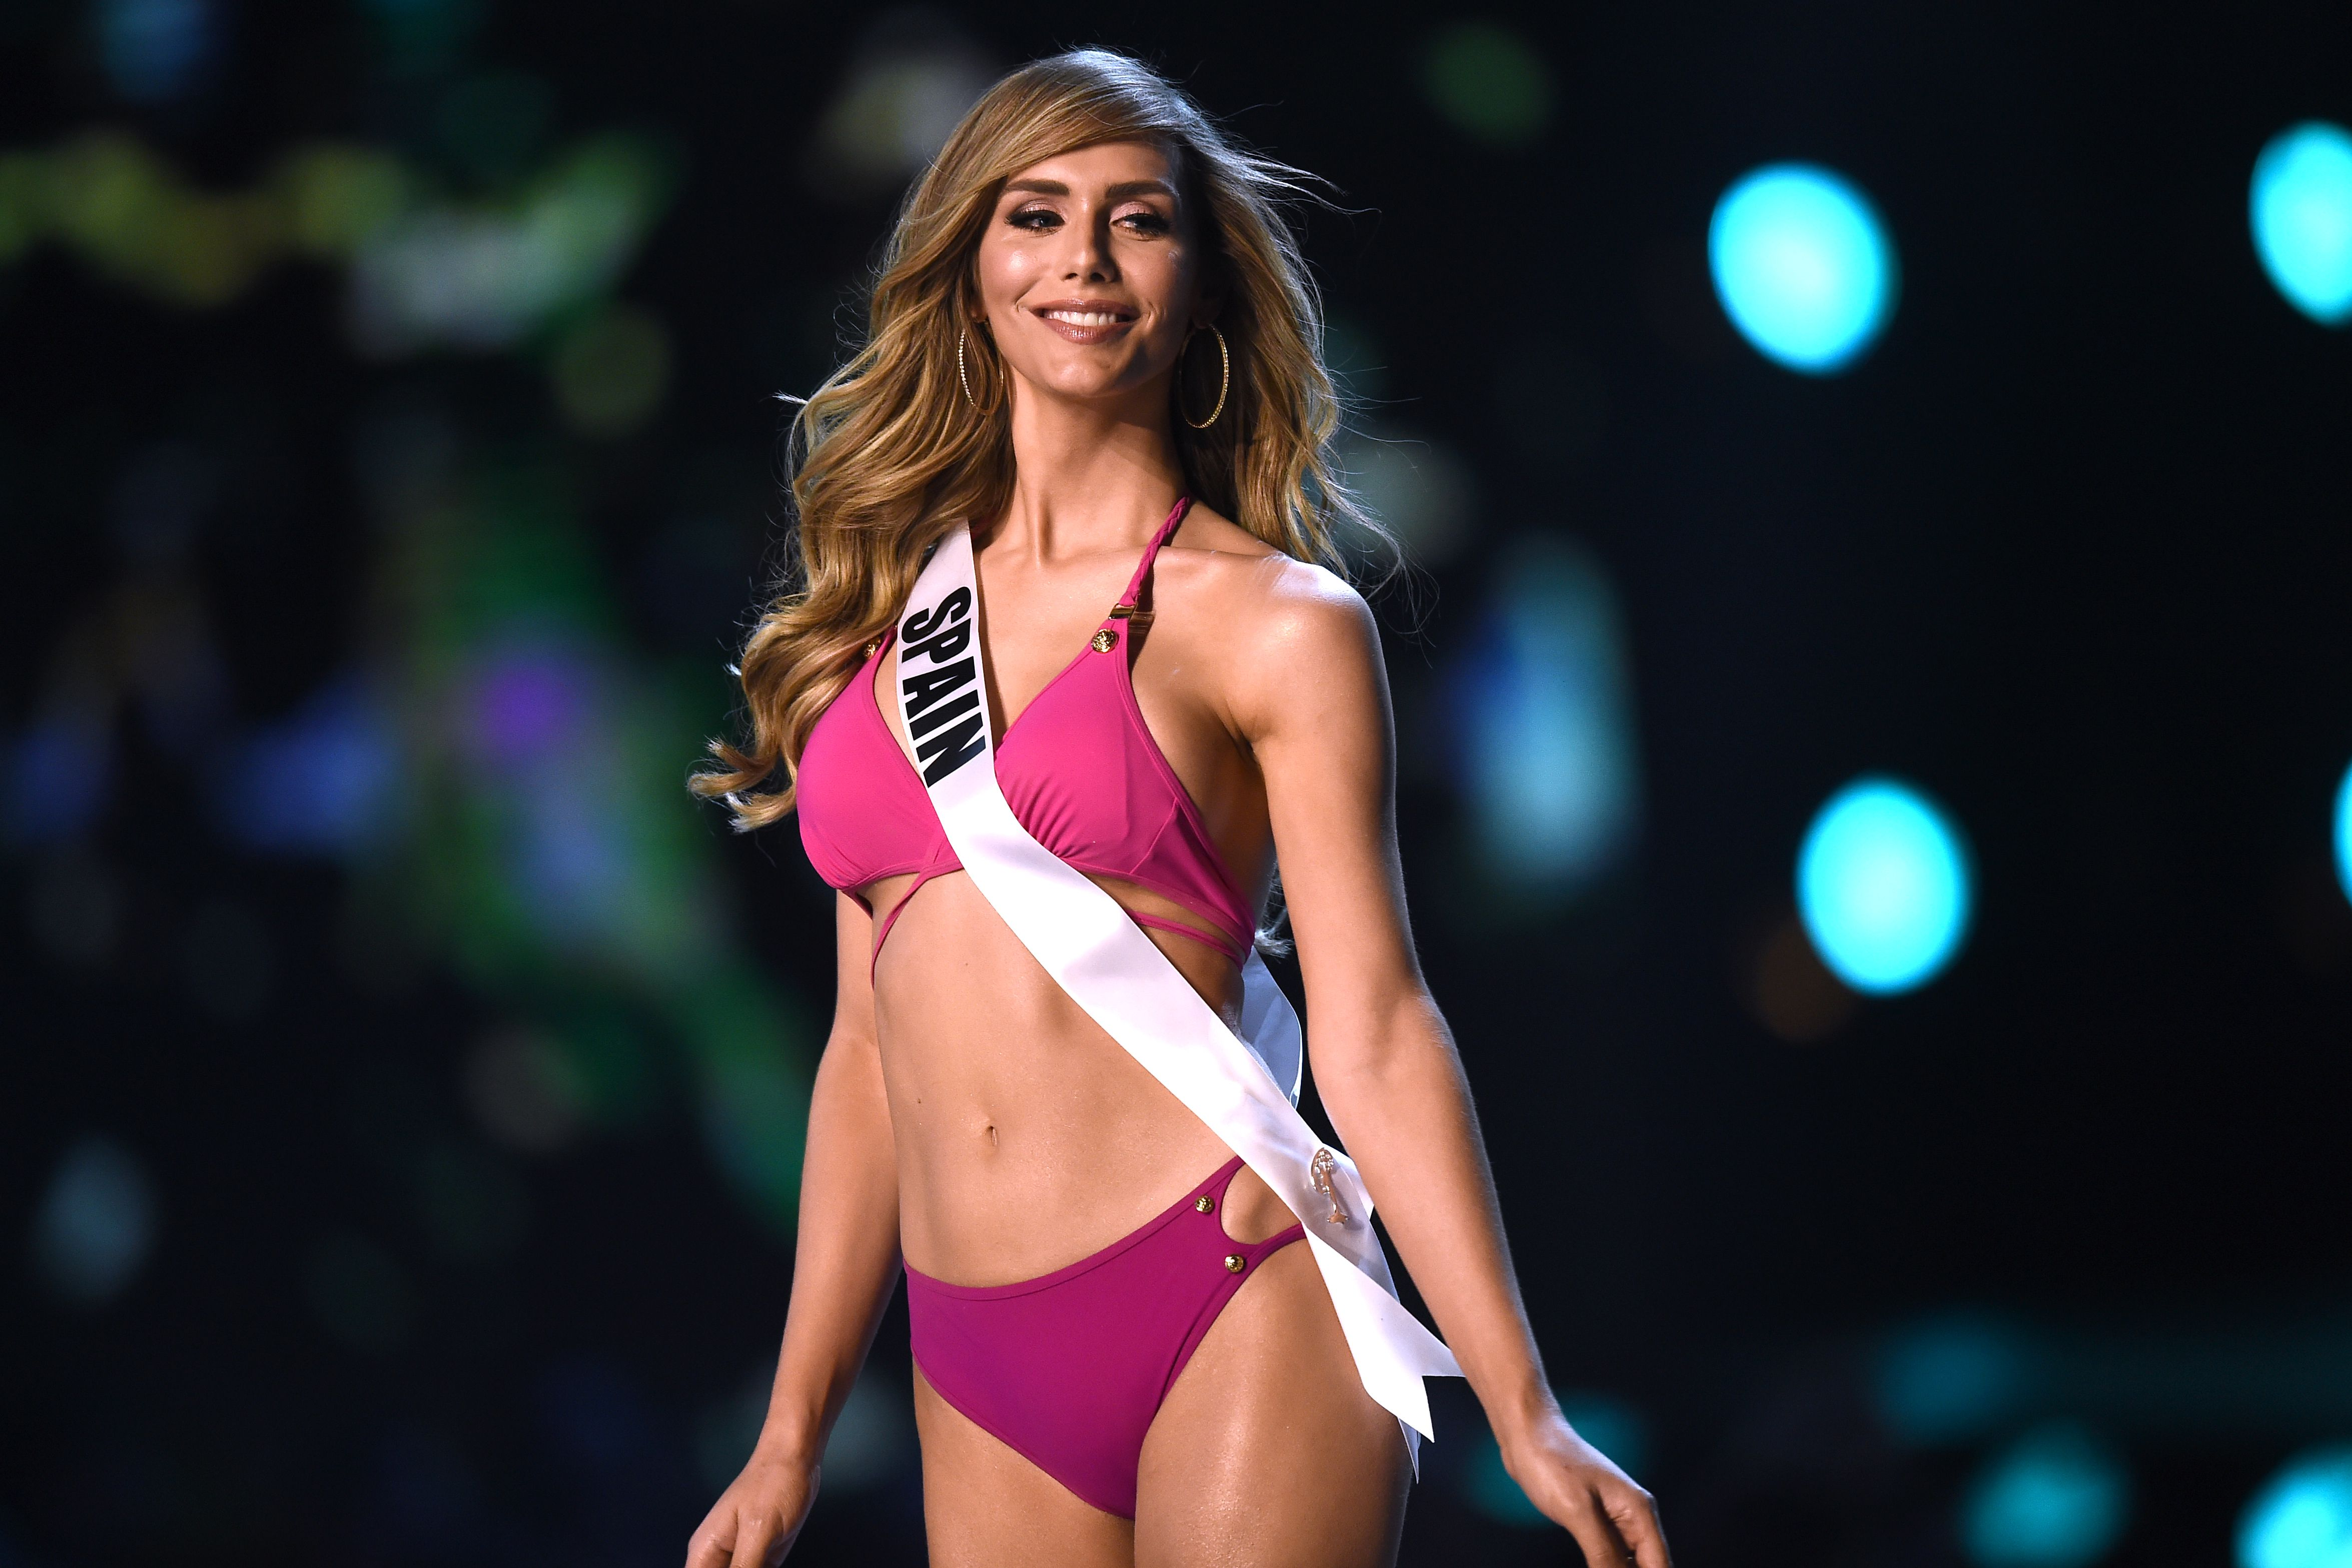 Angela Ponce of Spain competes in the swimsuit competition during the 2018 Miss Universe pageant in Bangkok in December 2018